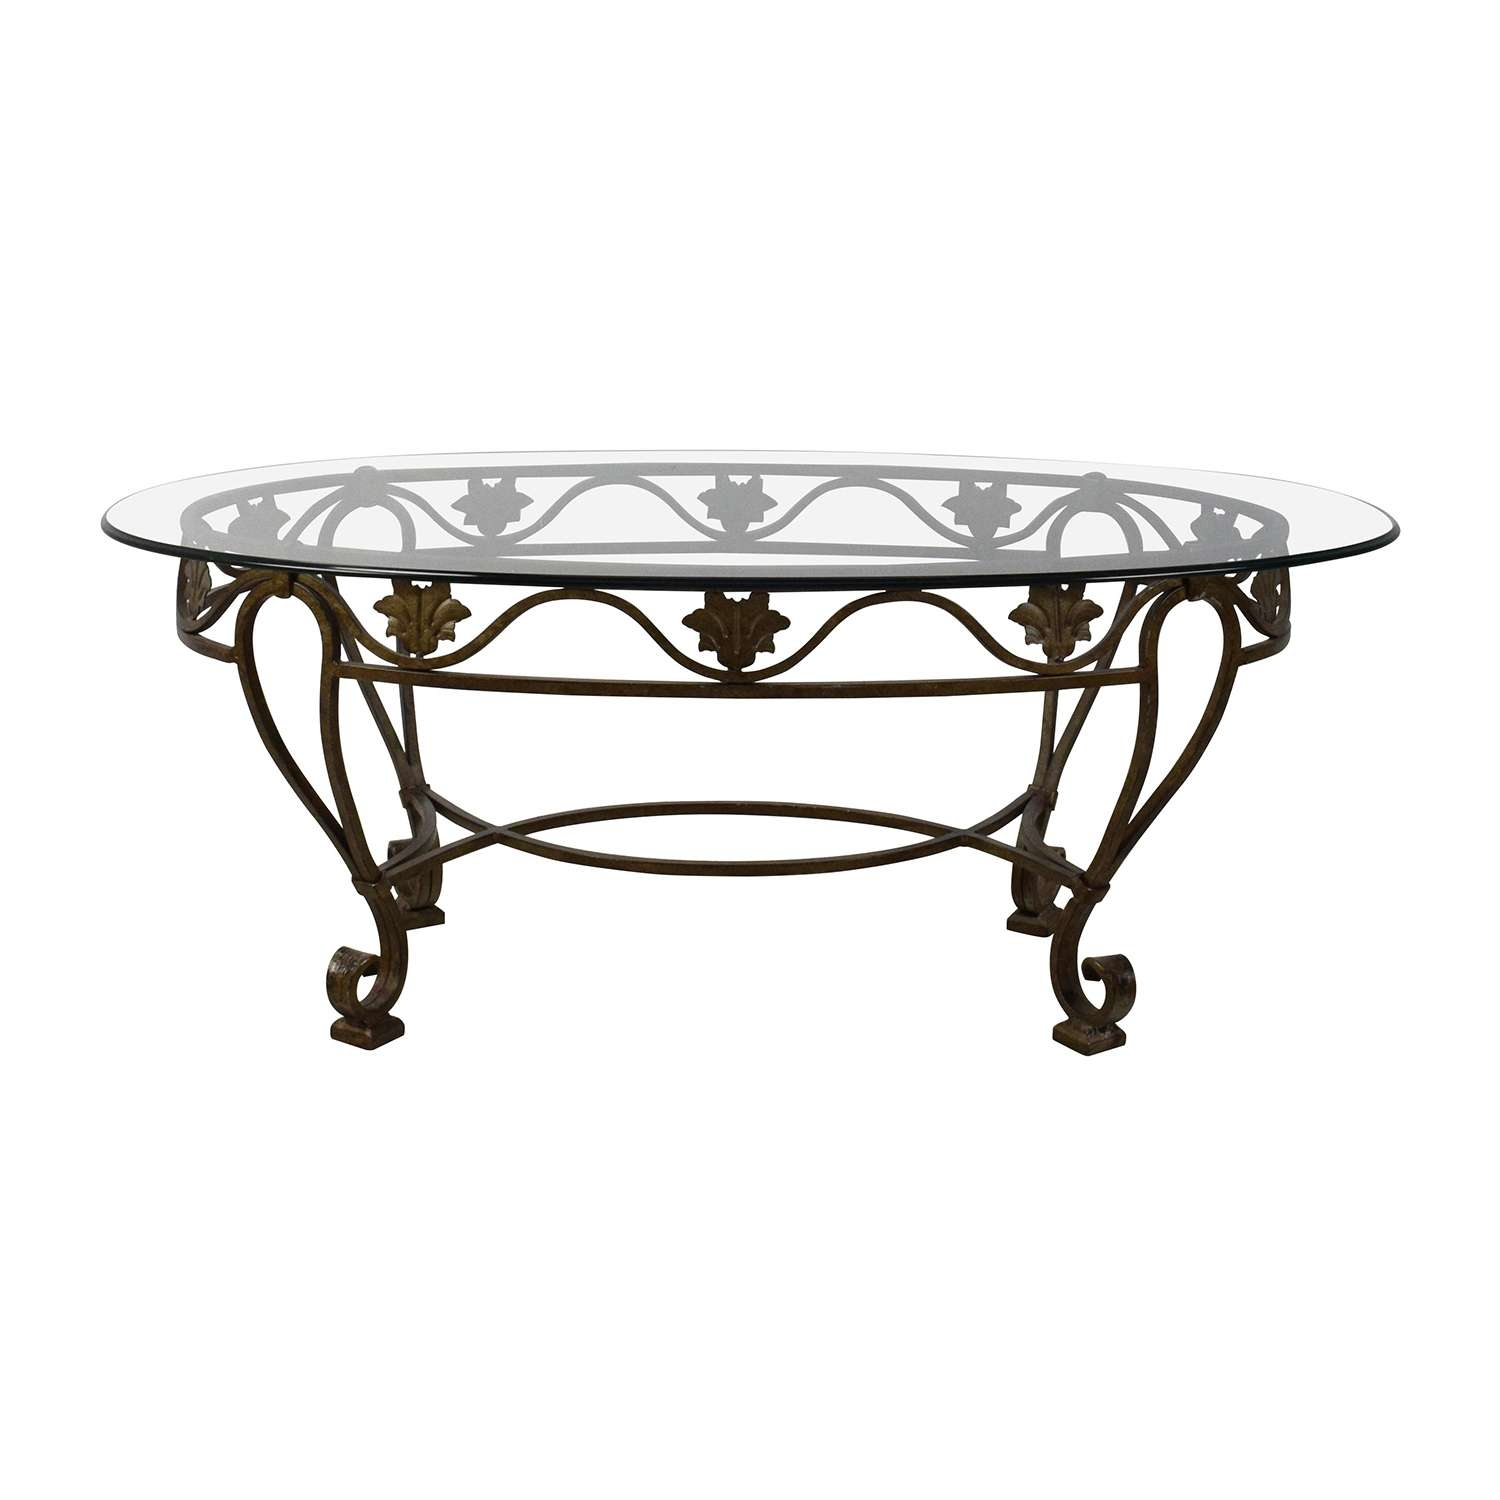 [%Popular Antique Glass Top Coffee Tables Within 90% Off – Iron Cast Glass Top Antique Coffee Table / Tables|90% Off – Iron Cast Glass Top Antique Coffee Table / Tables Intended For Popular Antique Glass Top Coffee Tables%] (View 2 of 20)